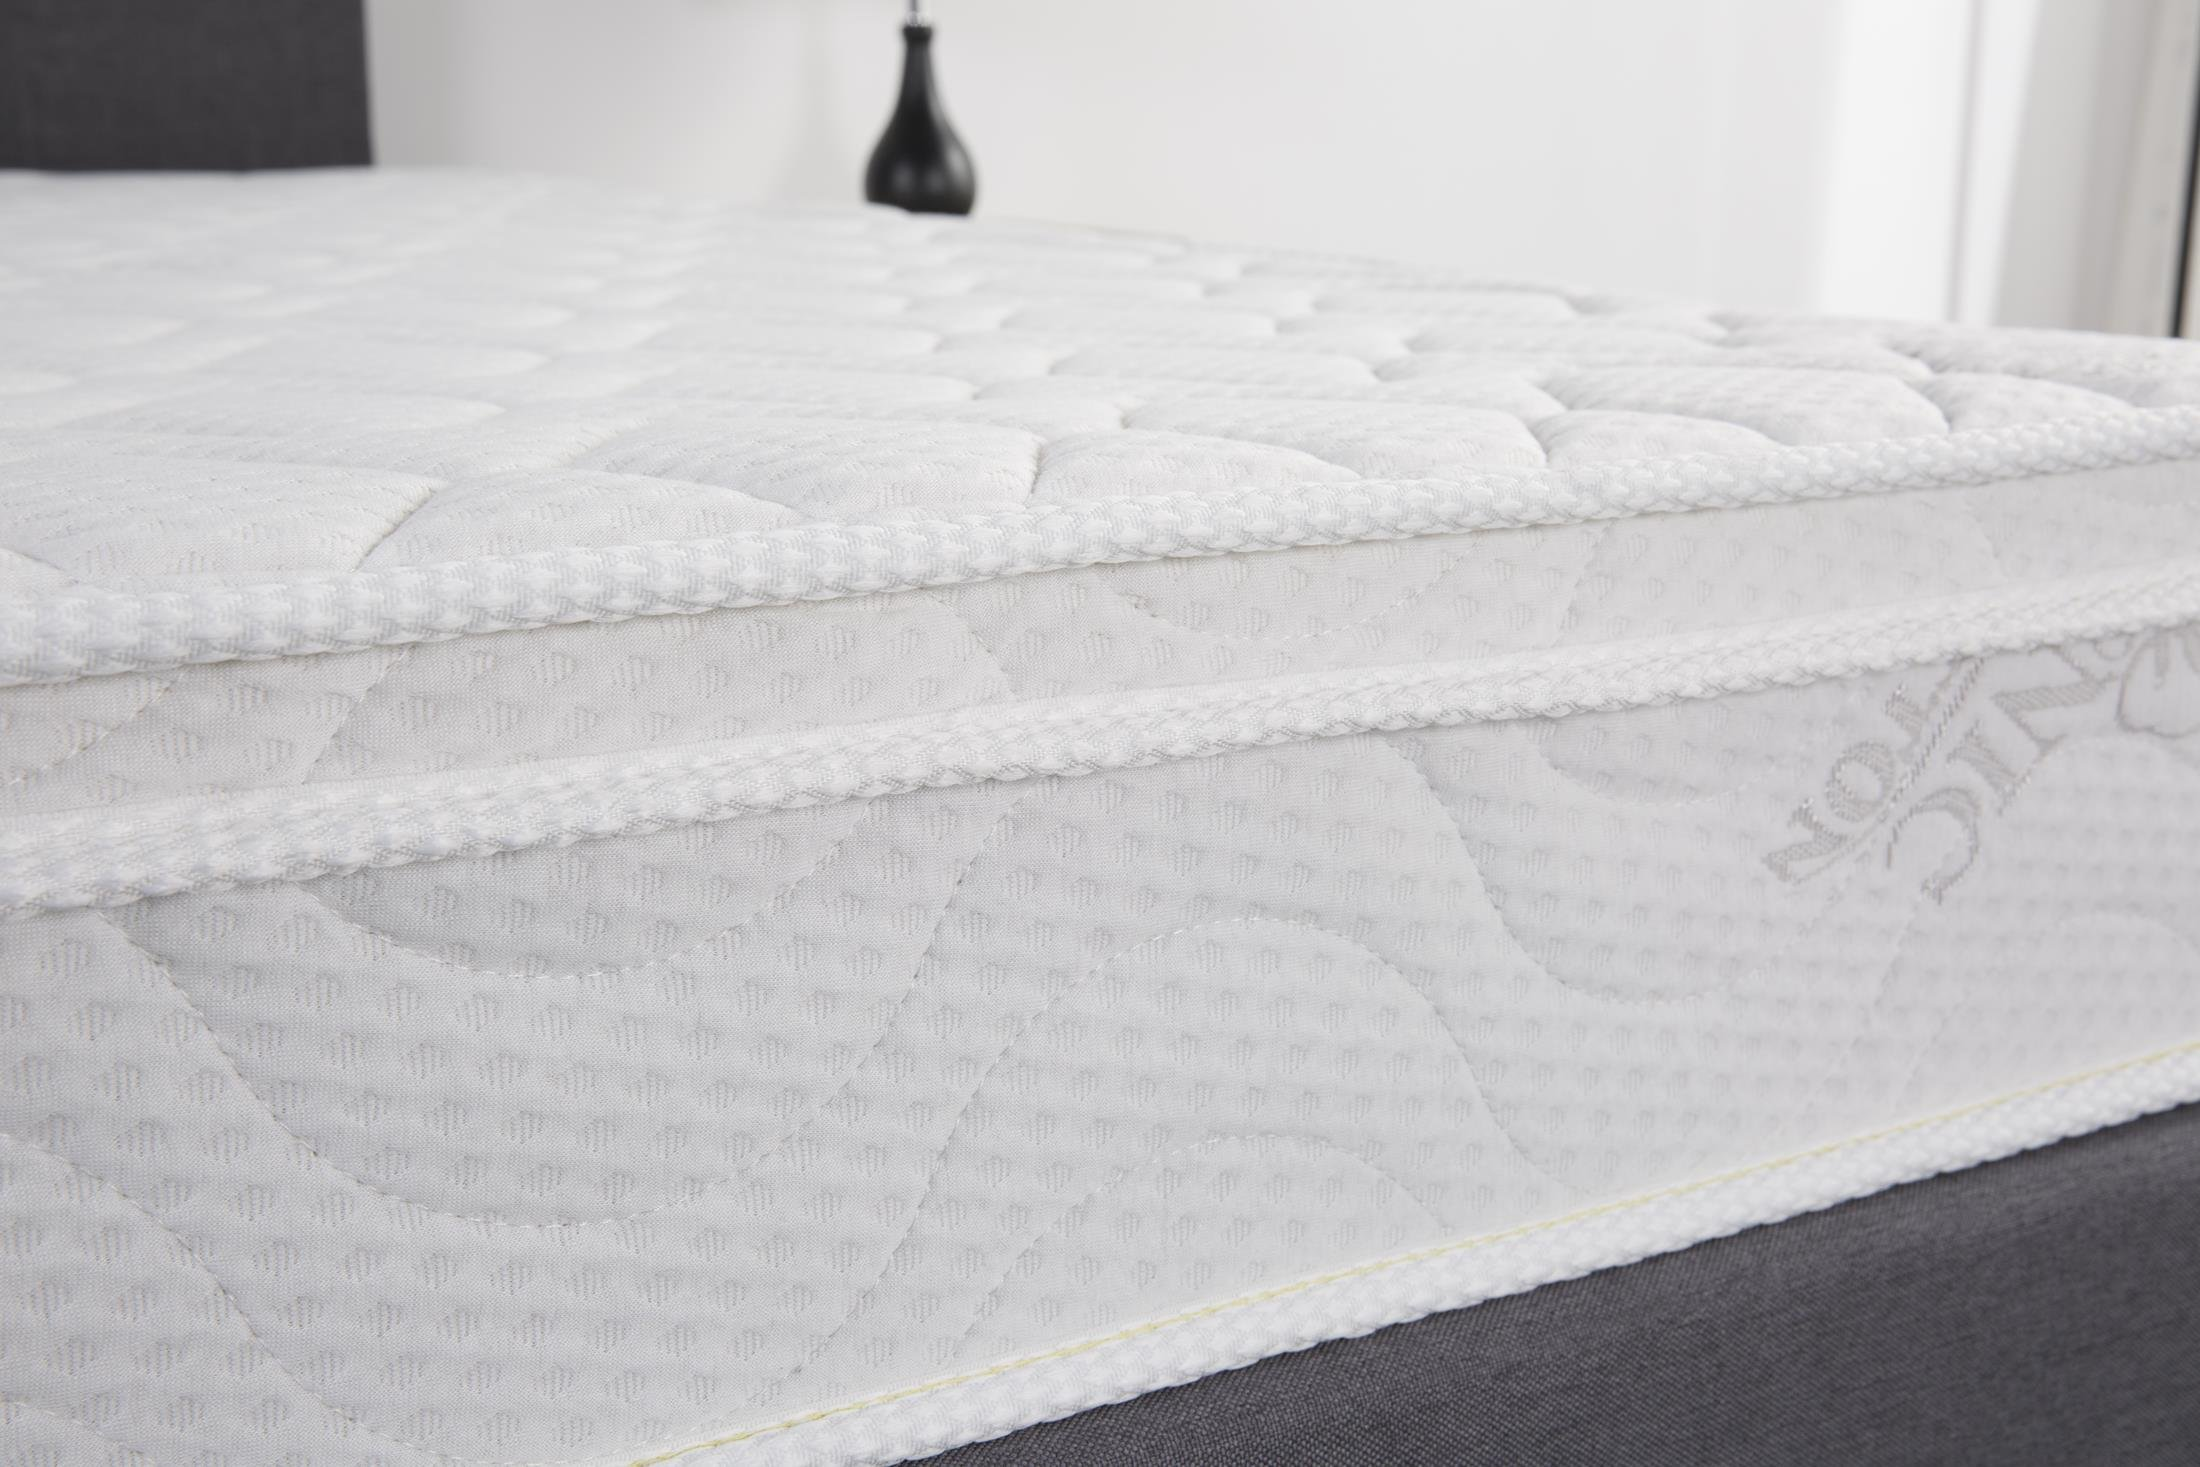 Oliver Smith - Organic Cotton - Euro Top - Revitalize Sleep - 8 Inch - Pocket Spring - Luxury Mattress w Green Memory Foam Certified - Full